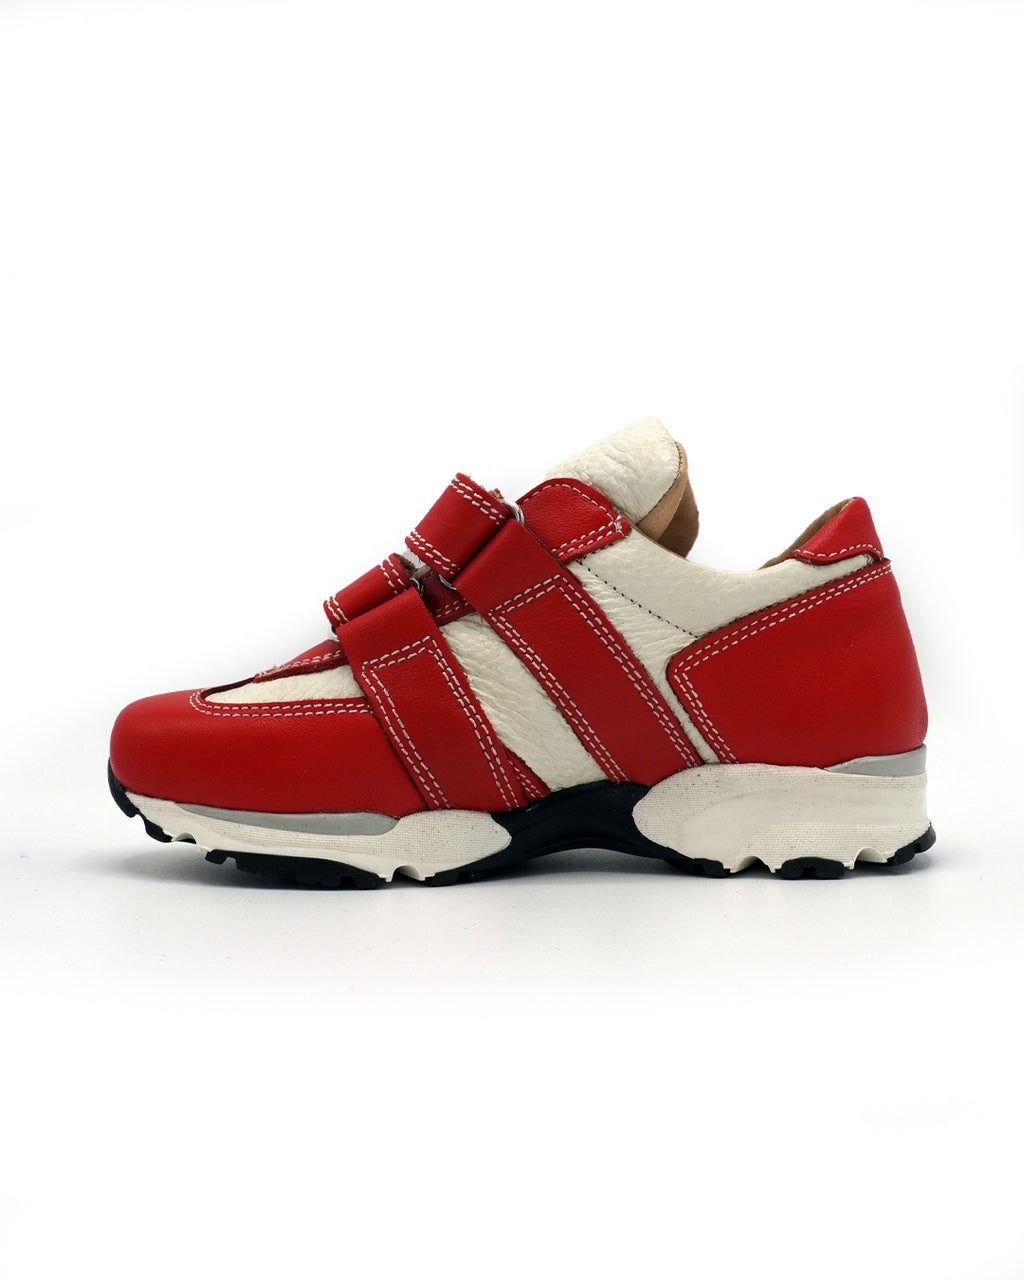 Red Leather Sneaker with Double-strap